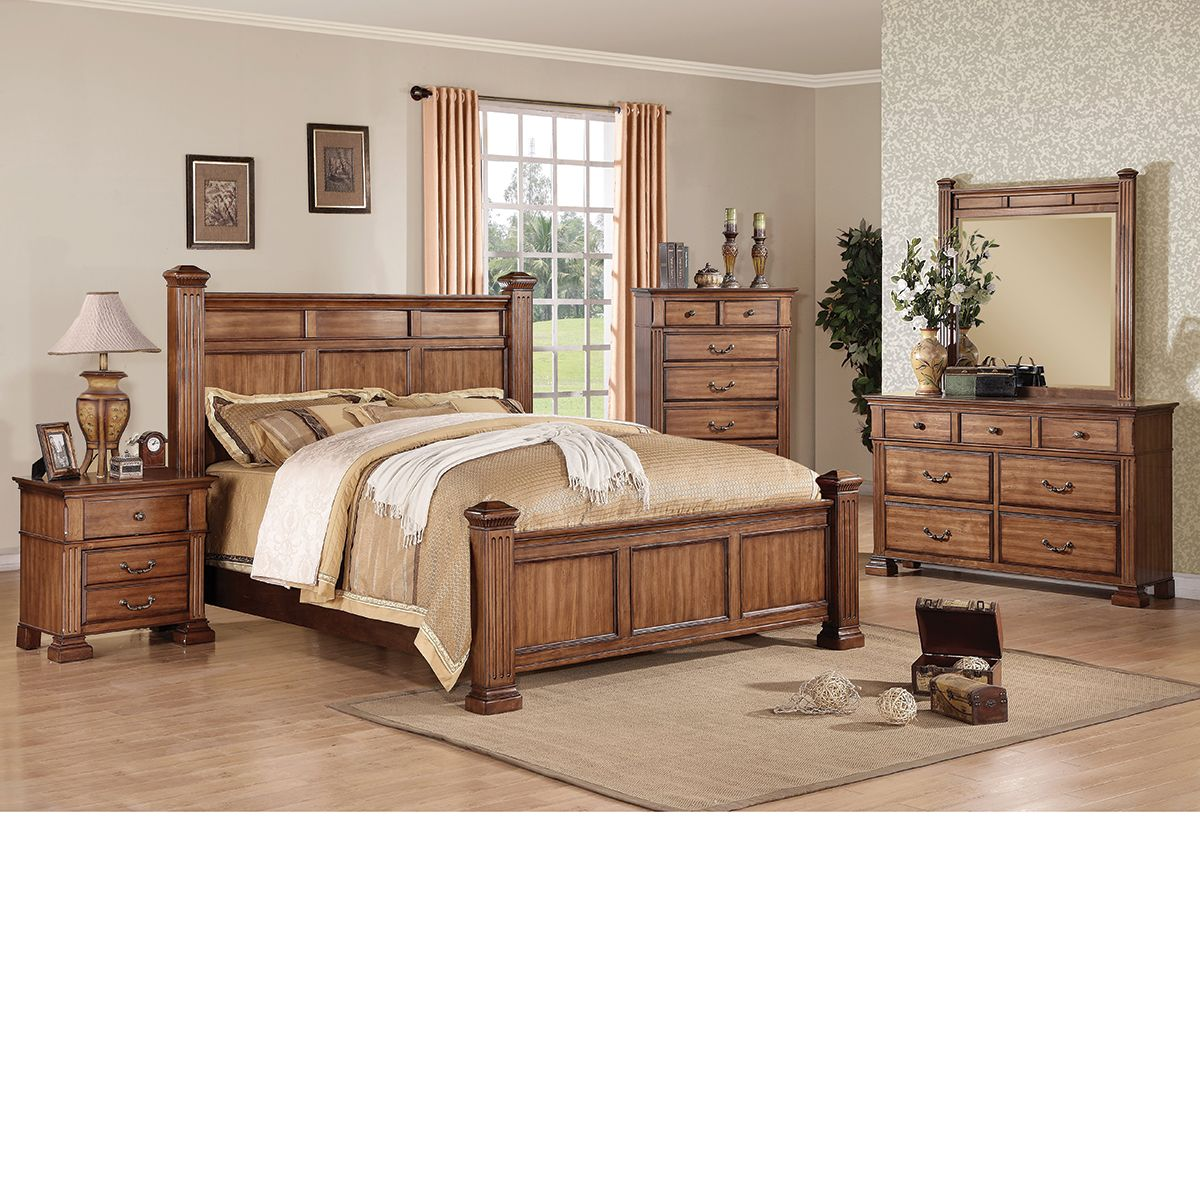 104+ Bedroom Sets At Courts Jamaica Best HD